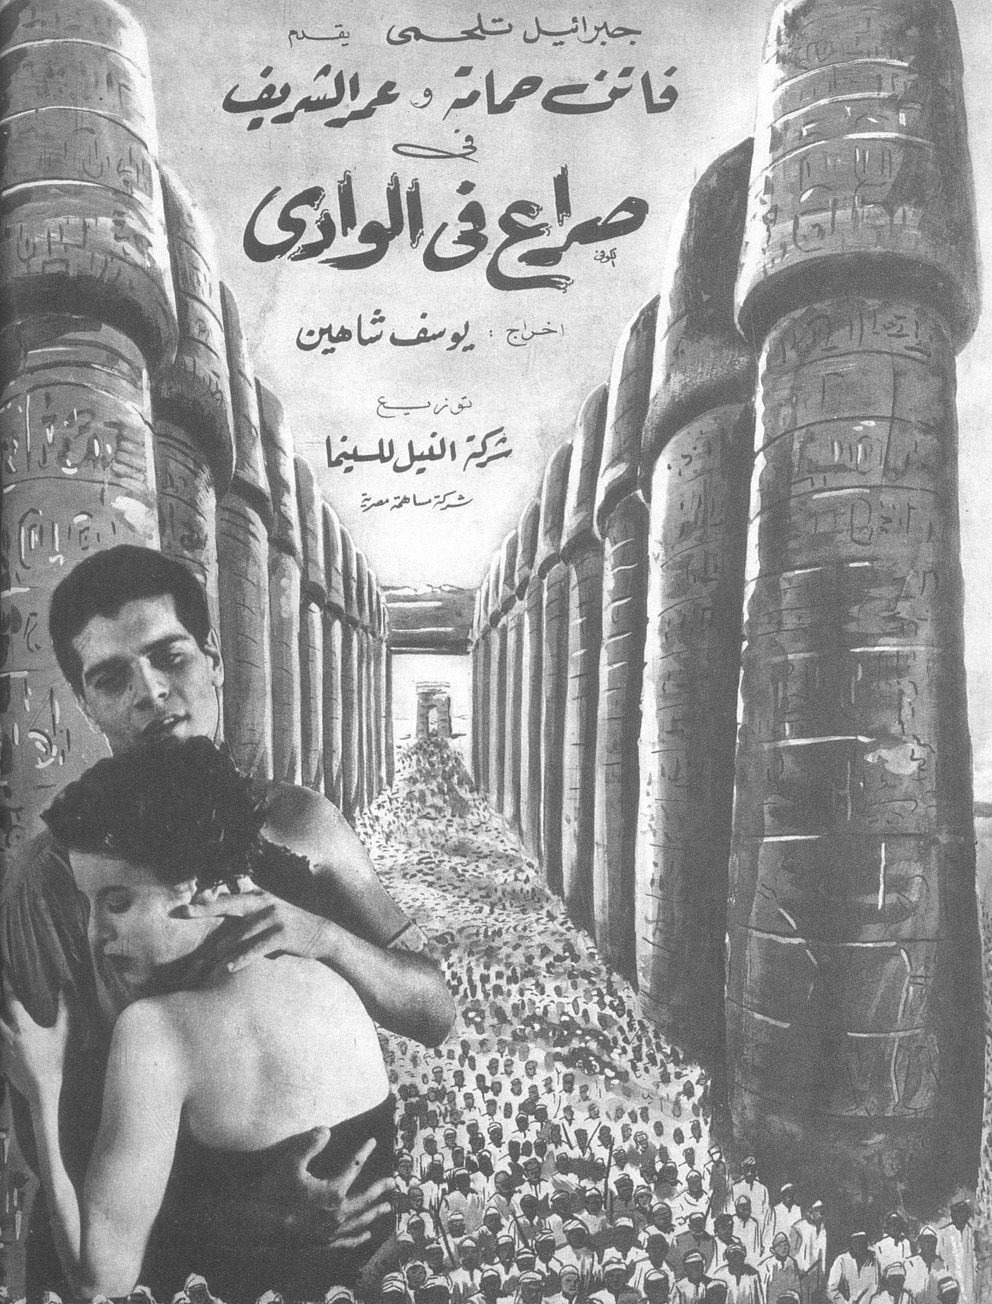 Youssef Chahine The Blazing Sun 1954 Struggle in the Valley Omar Sharif